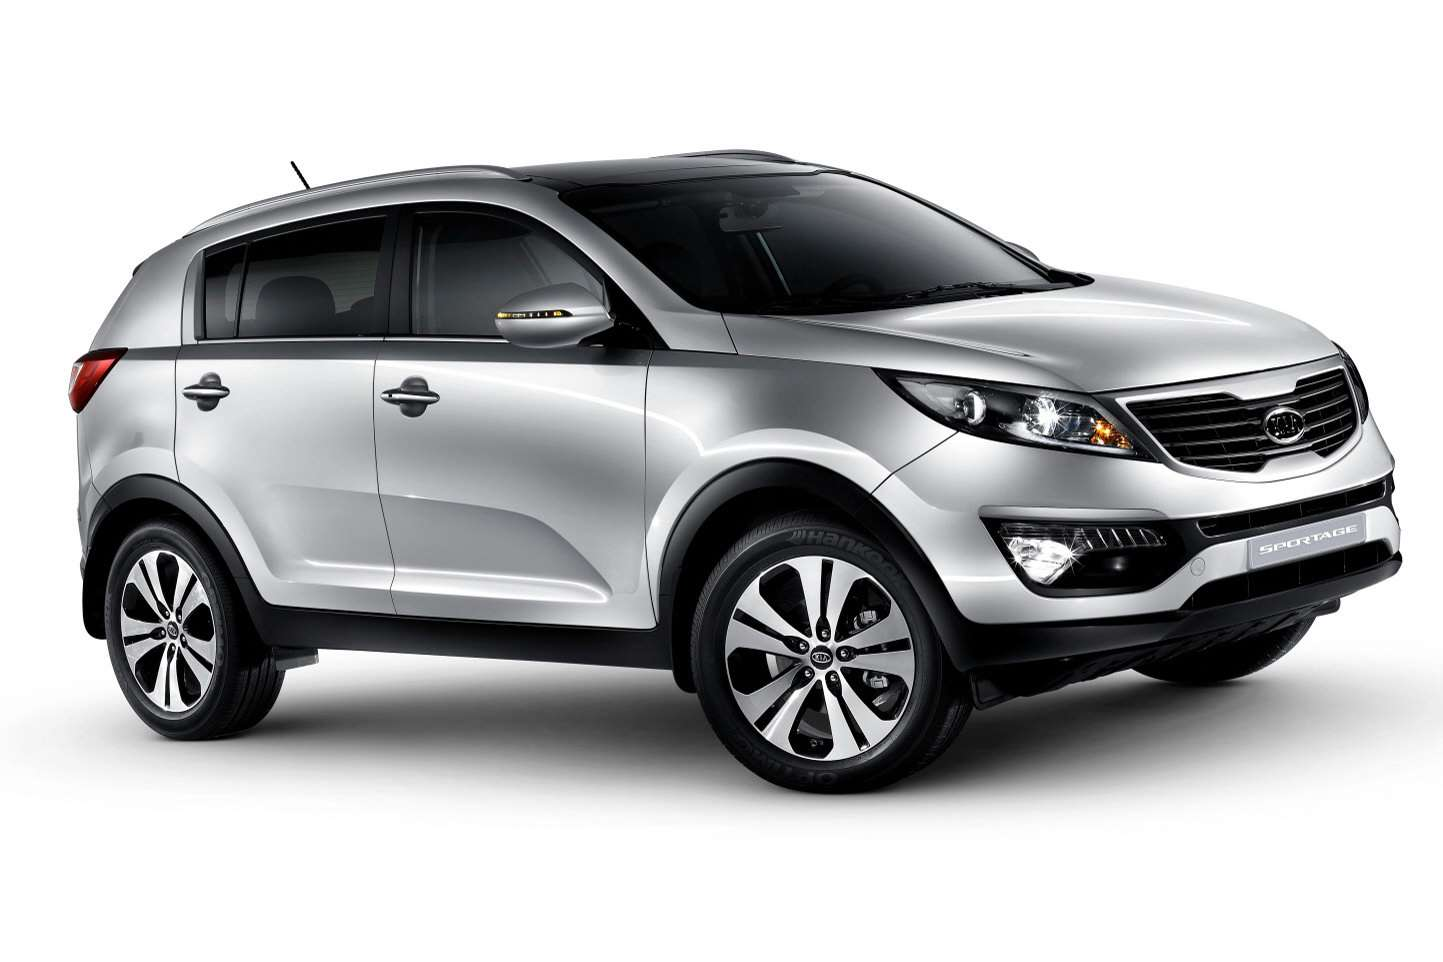 2011 Kia Sportage first official